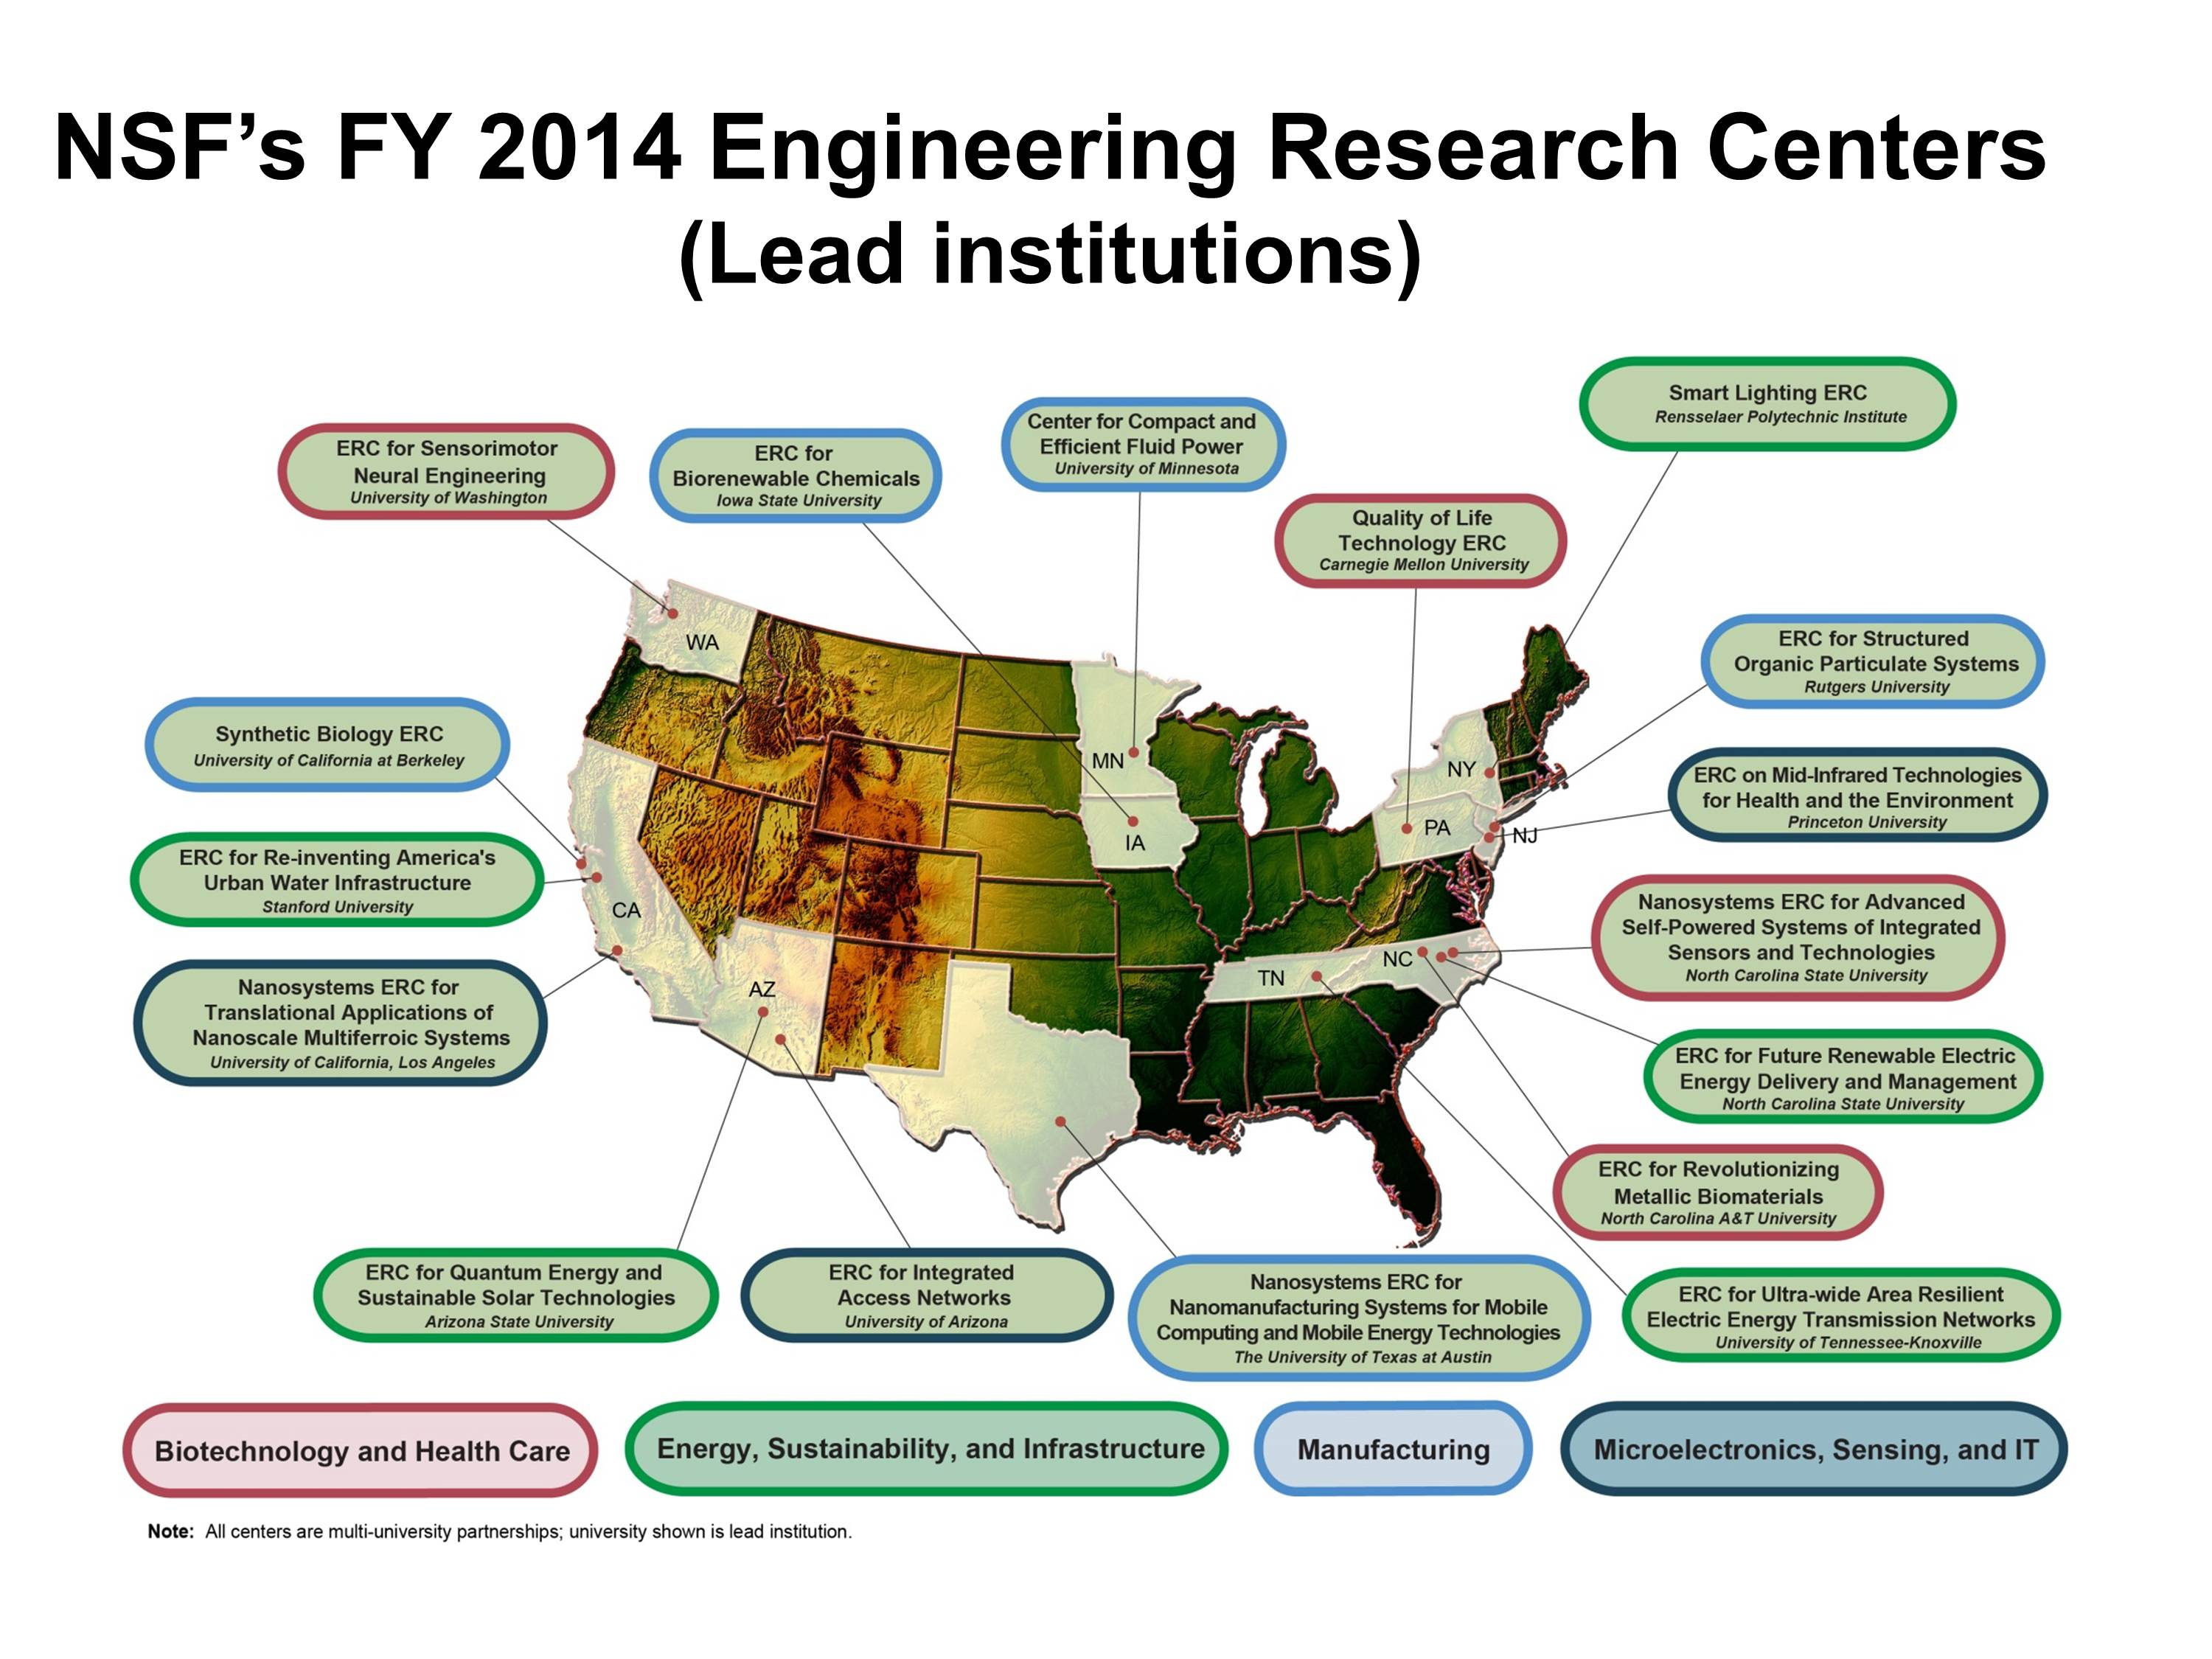 Exhibit A. Current ERCs in FY2014 and Technology Clusters of the ERCs